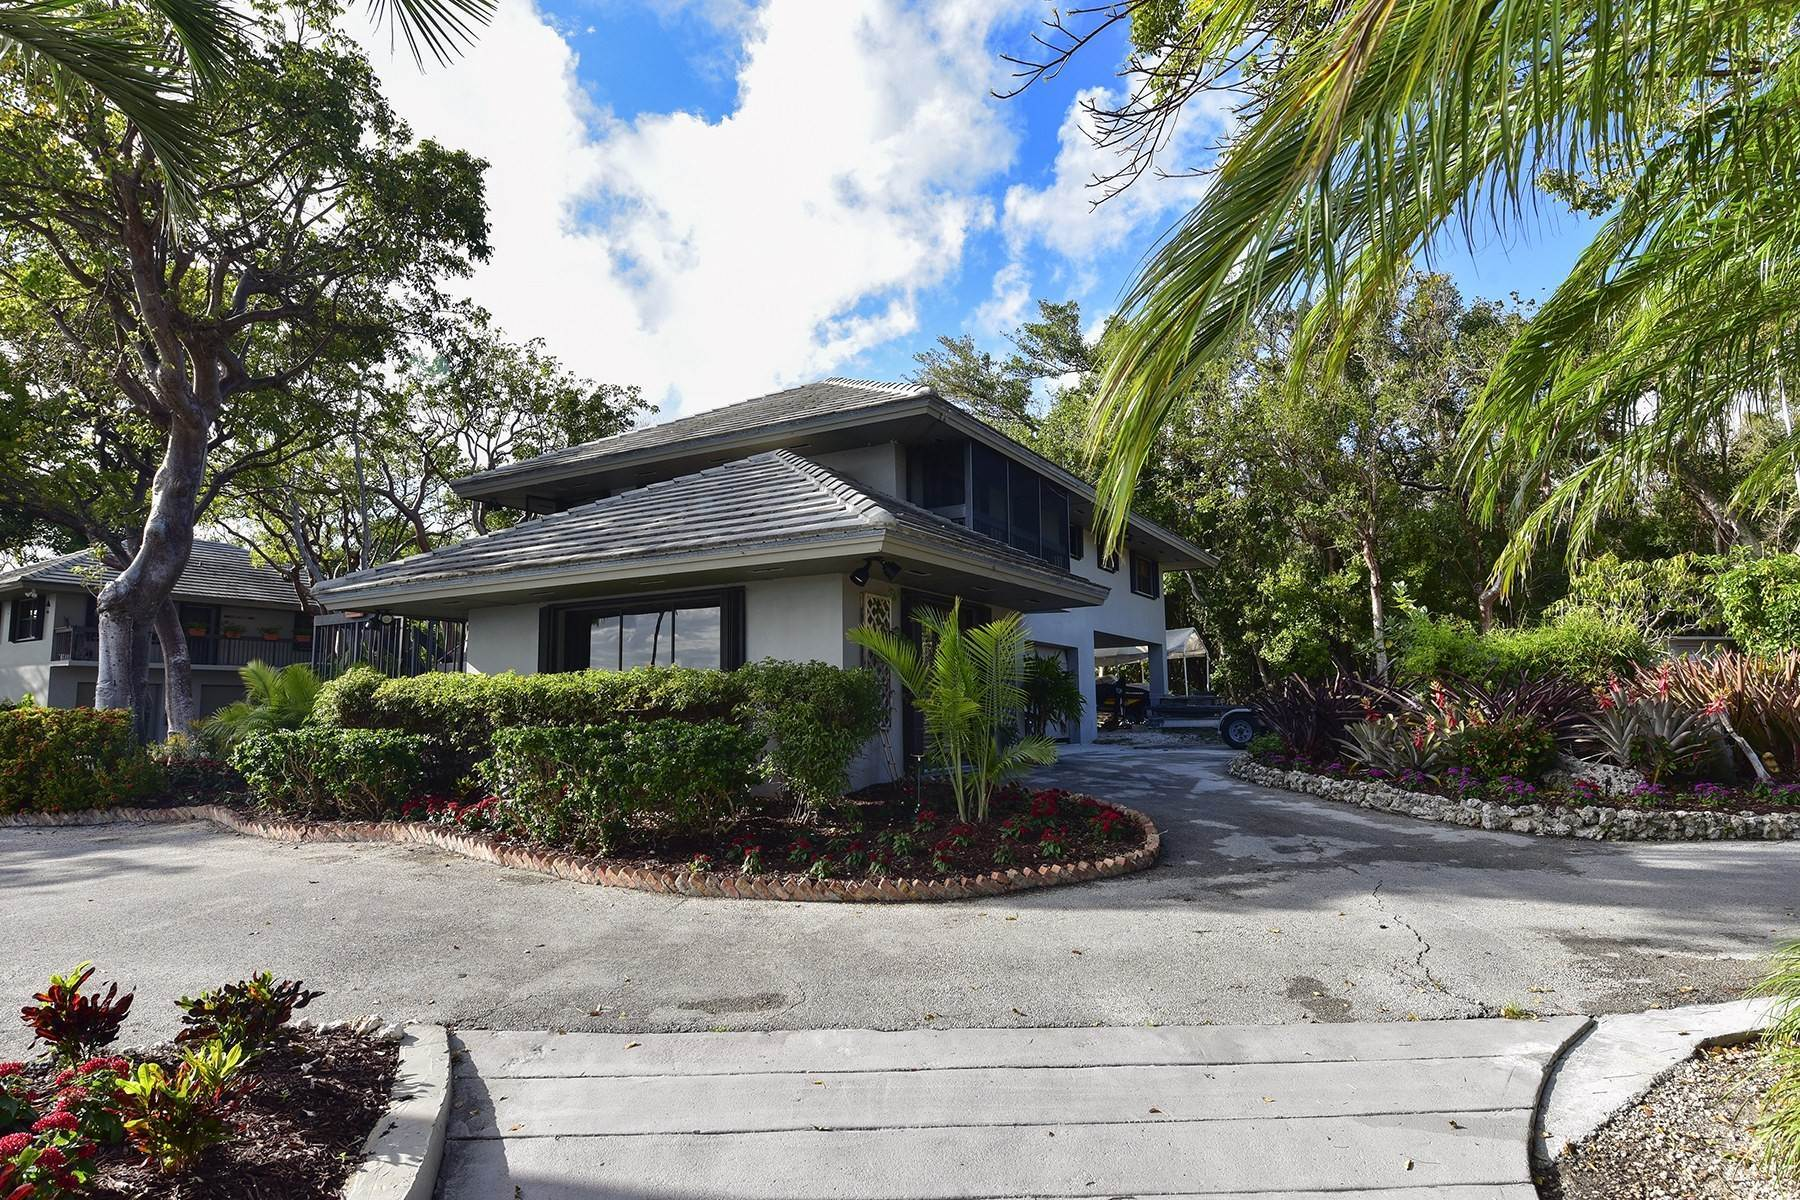 20. Property for Sale at Pumpkin Key - Private Island, Key Largo, FL Key Largo, Florida 33037 United States